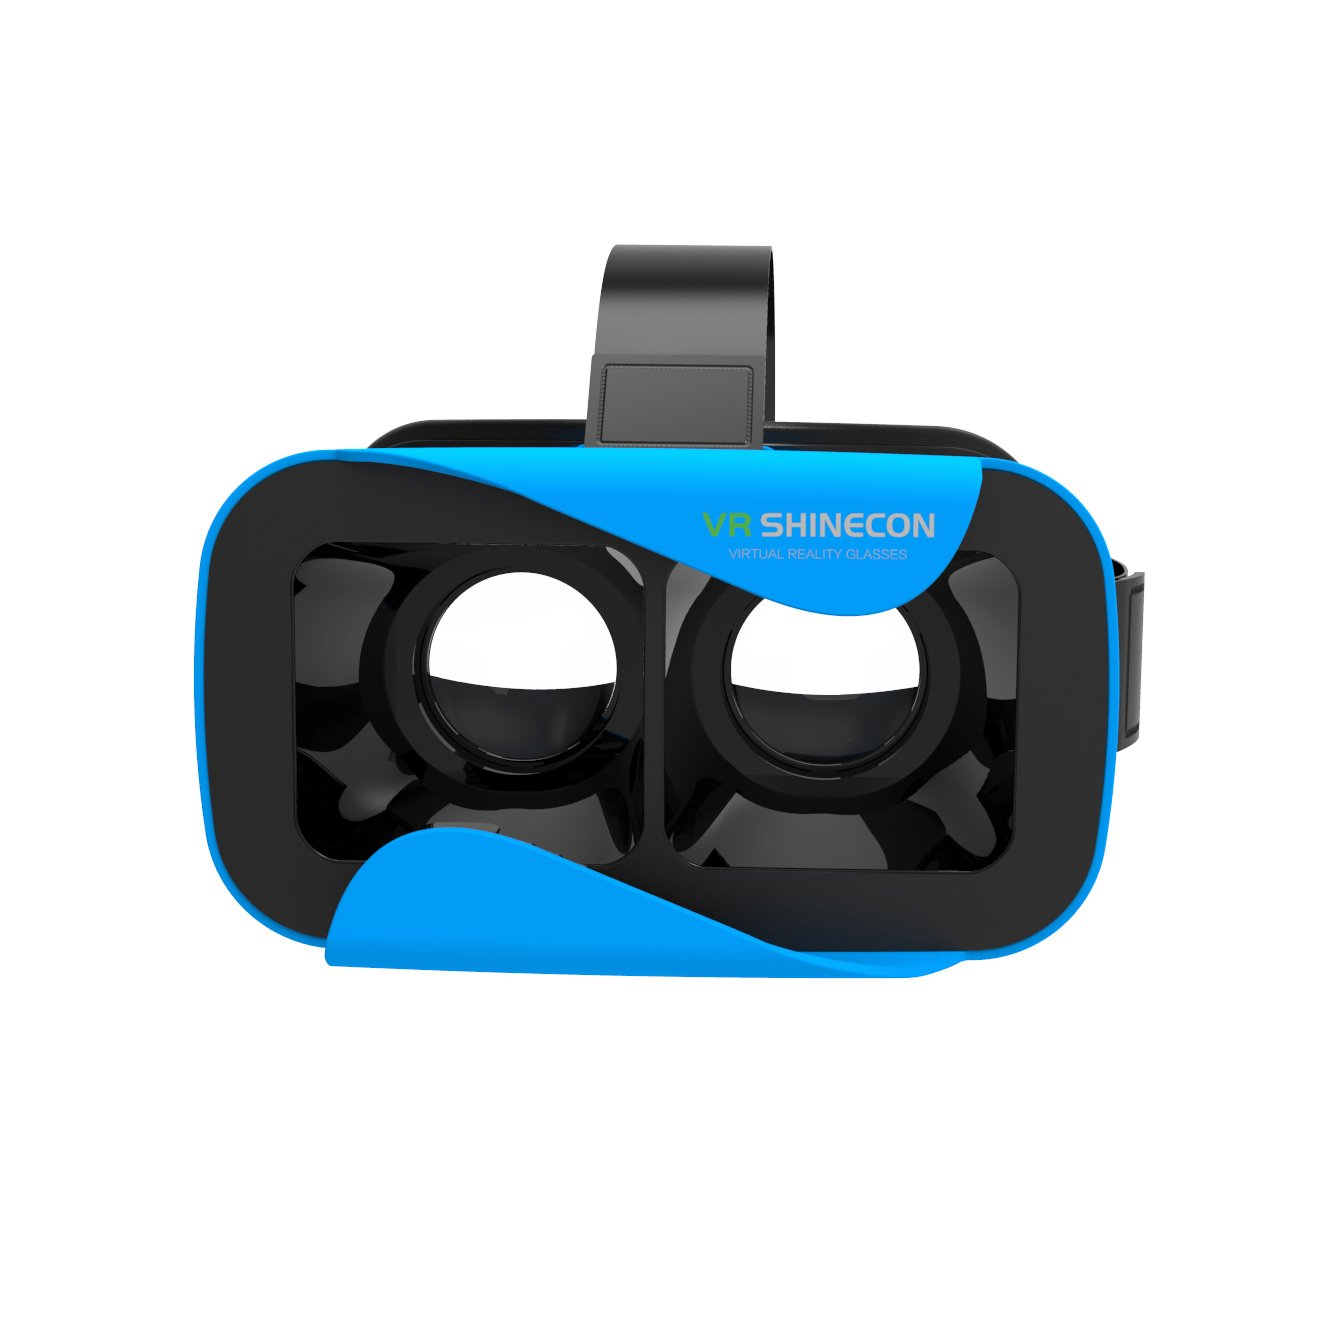 3b07b35fbedb VR SHINECON VR Headset Virtual Reality 3D Glasses for Movies Video Games  Compatible with IOS Android Microsoft Smartphone within 4.7 - 6.0 inches  (Blue)